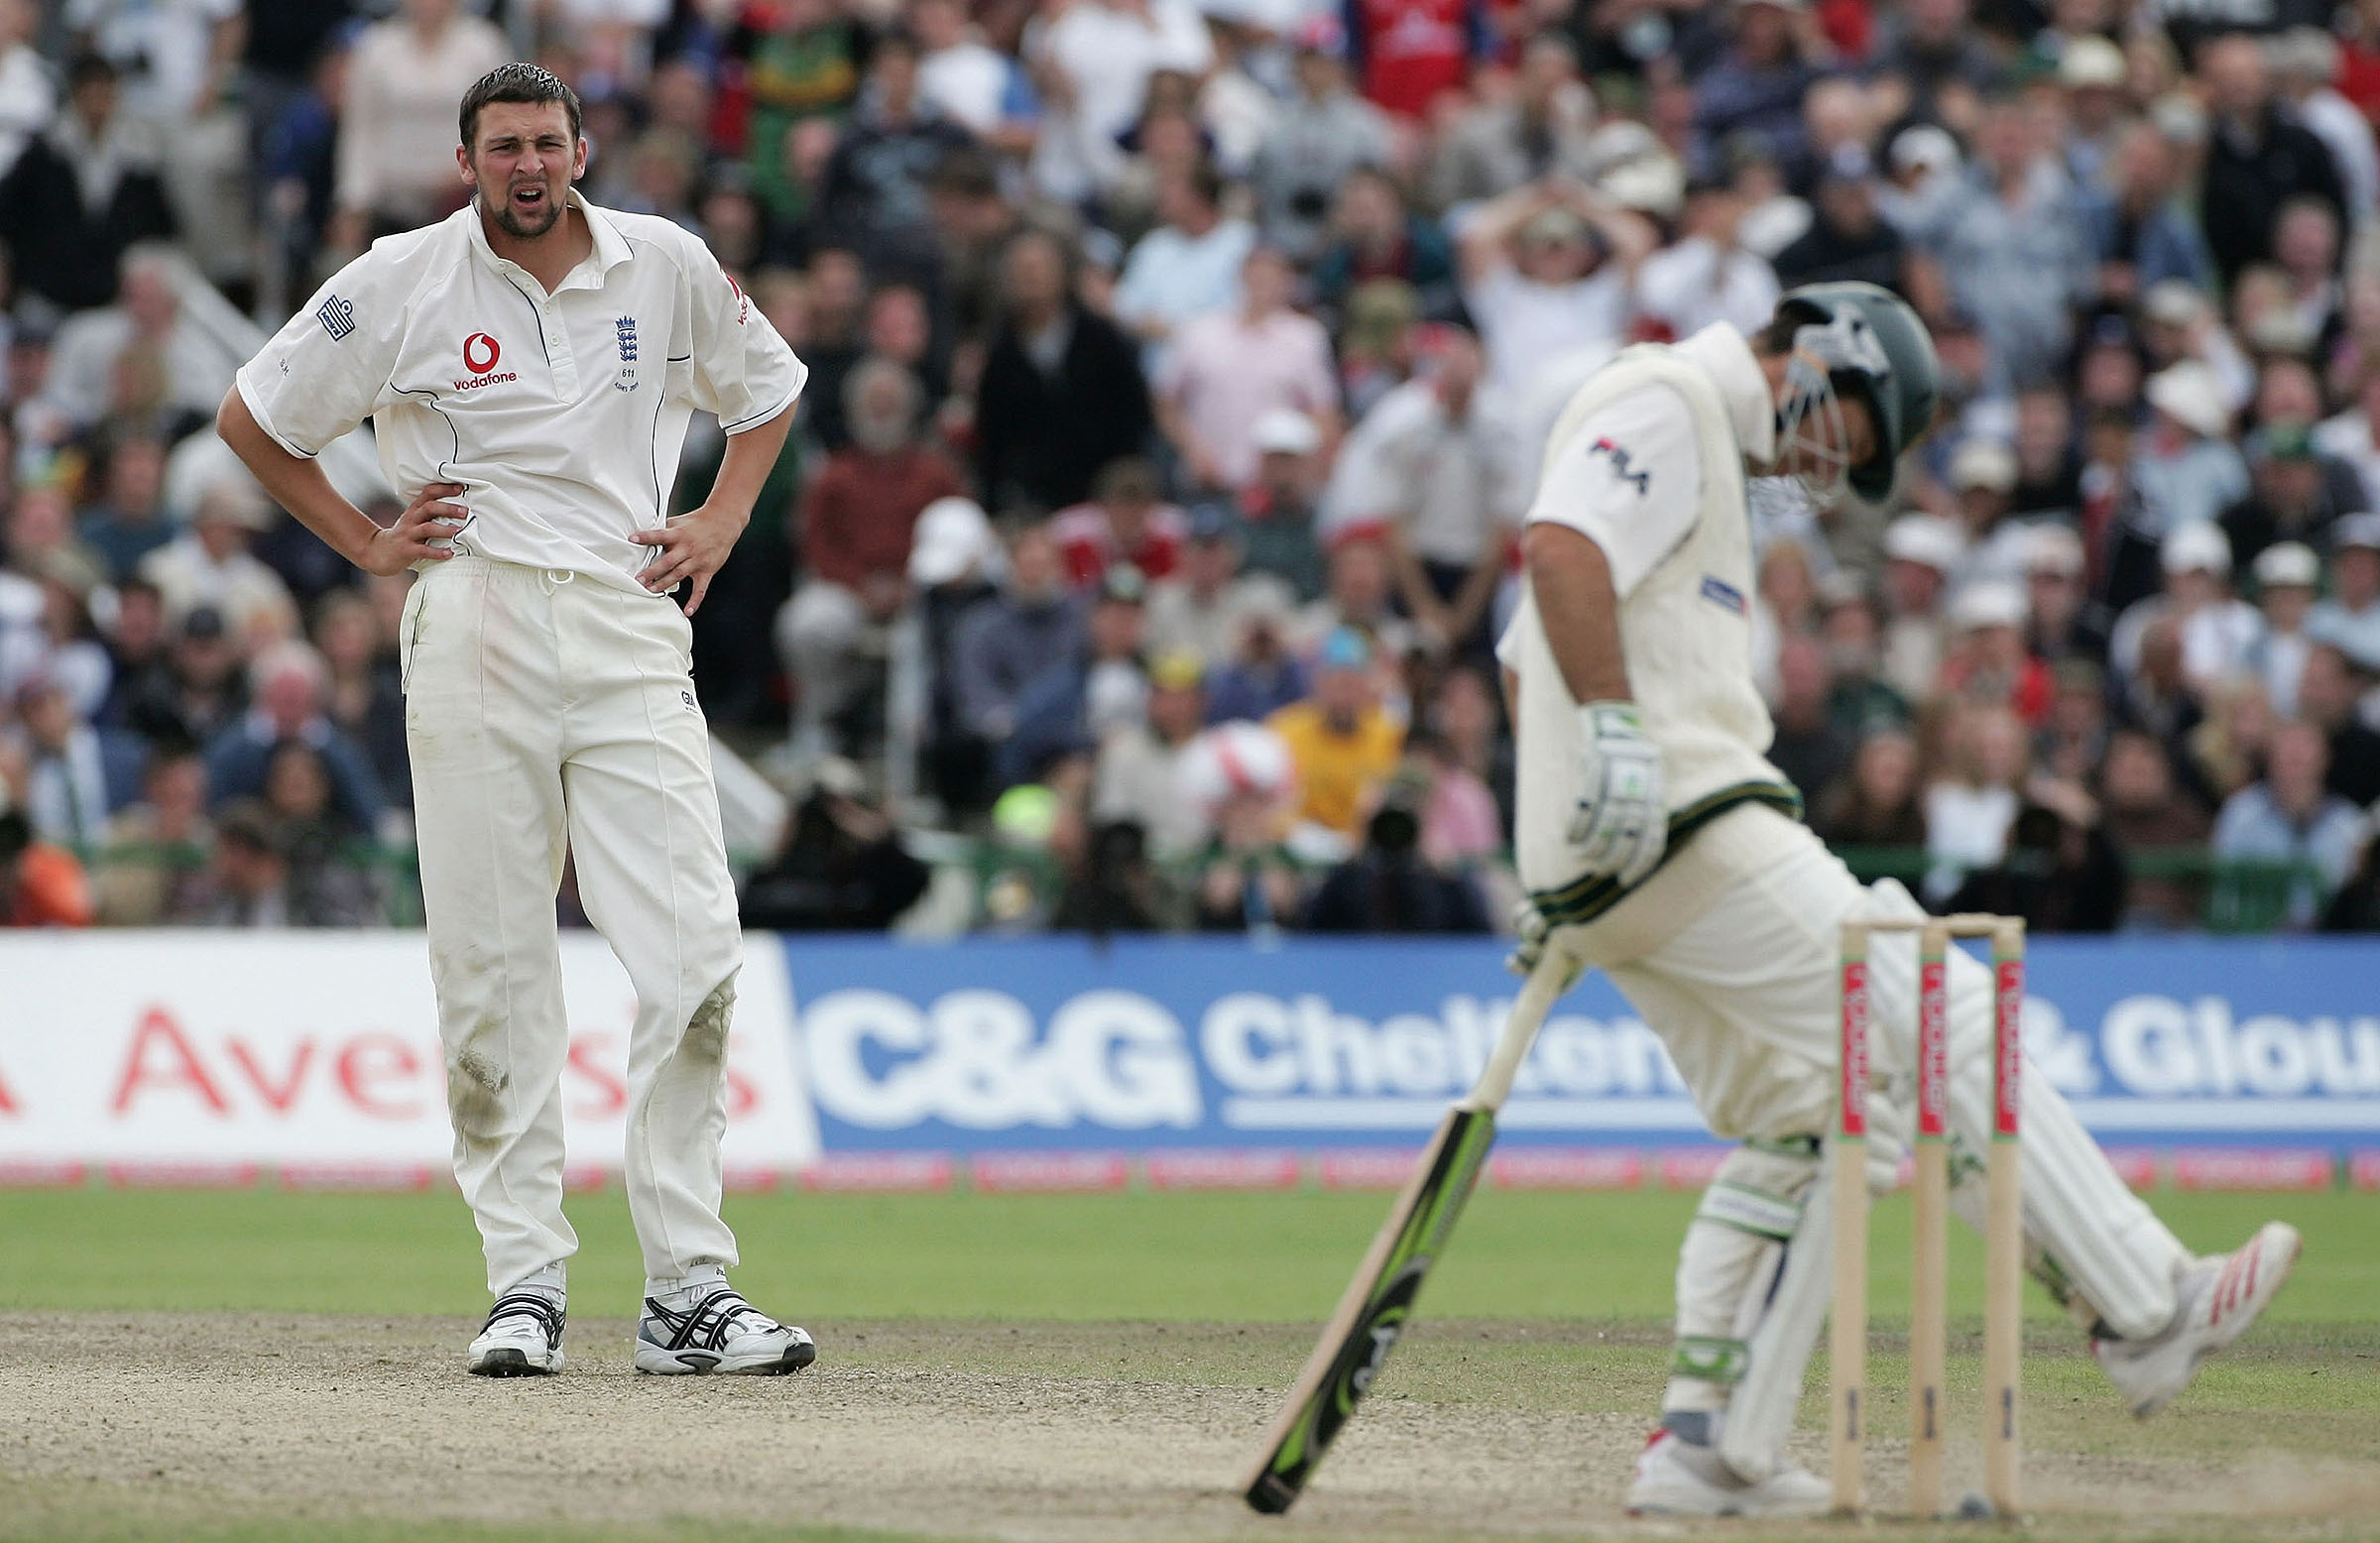 Steve Harmison fixes the Australian roadblock // Getty